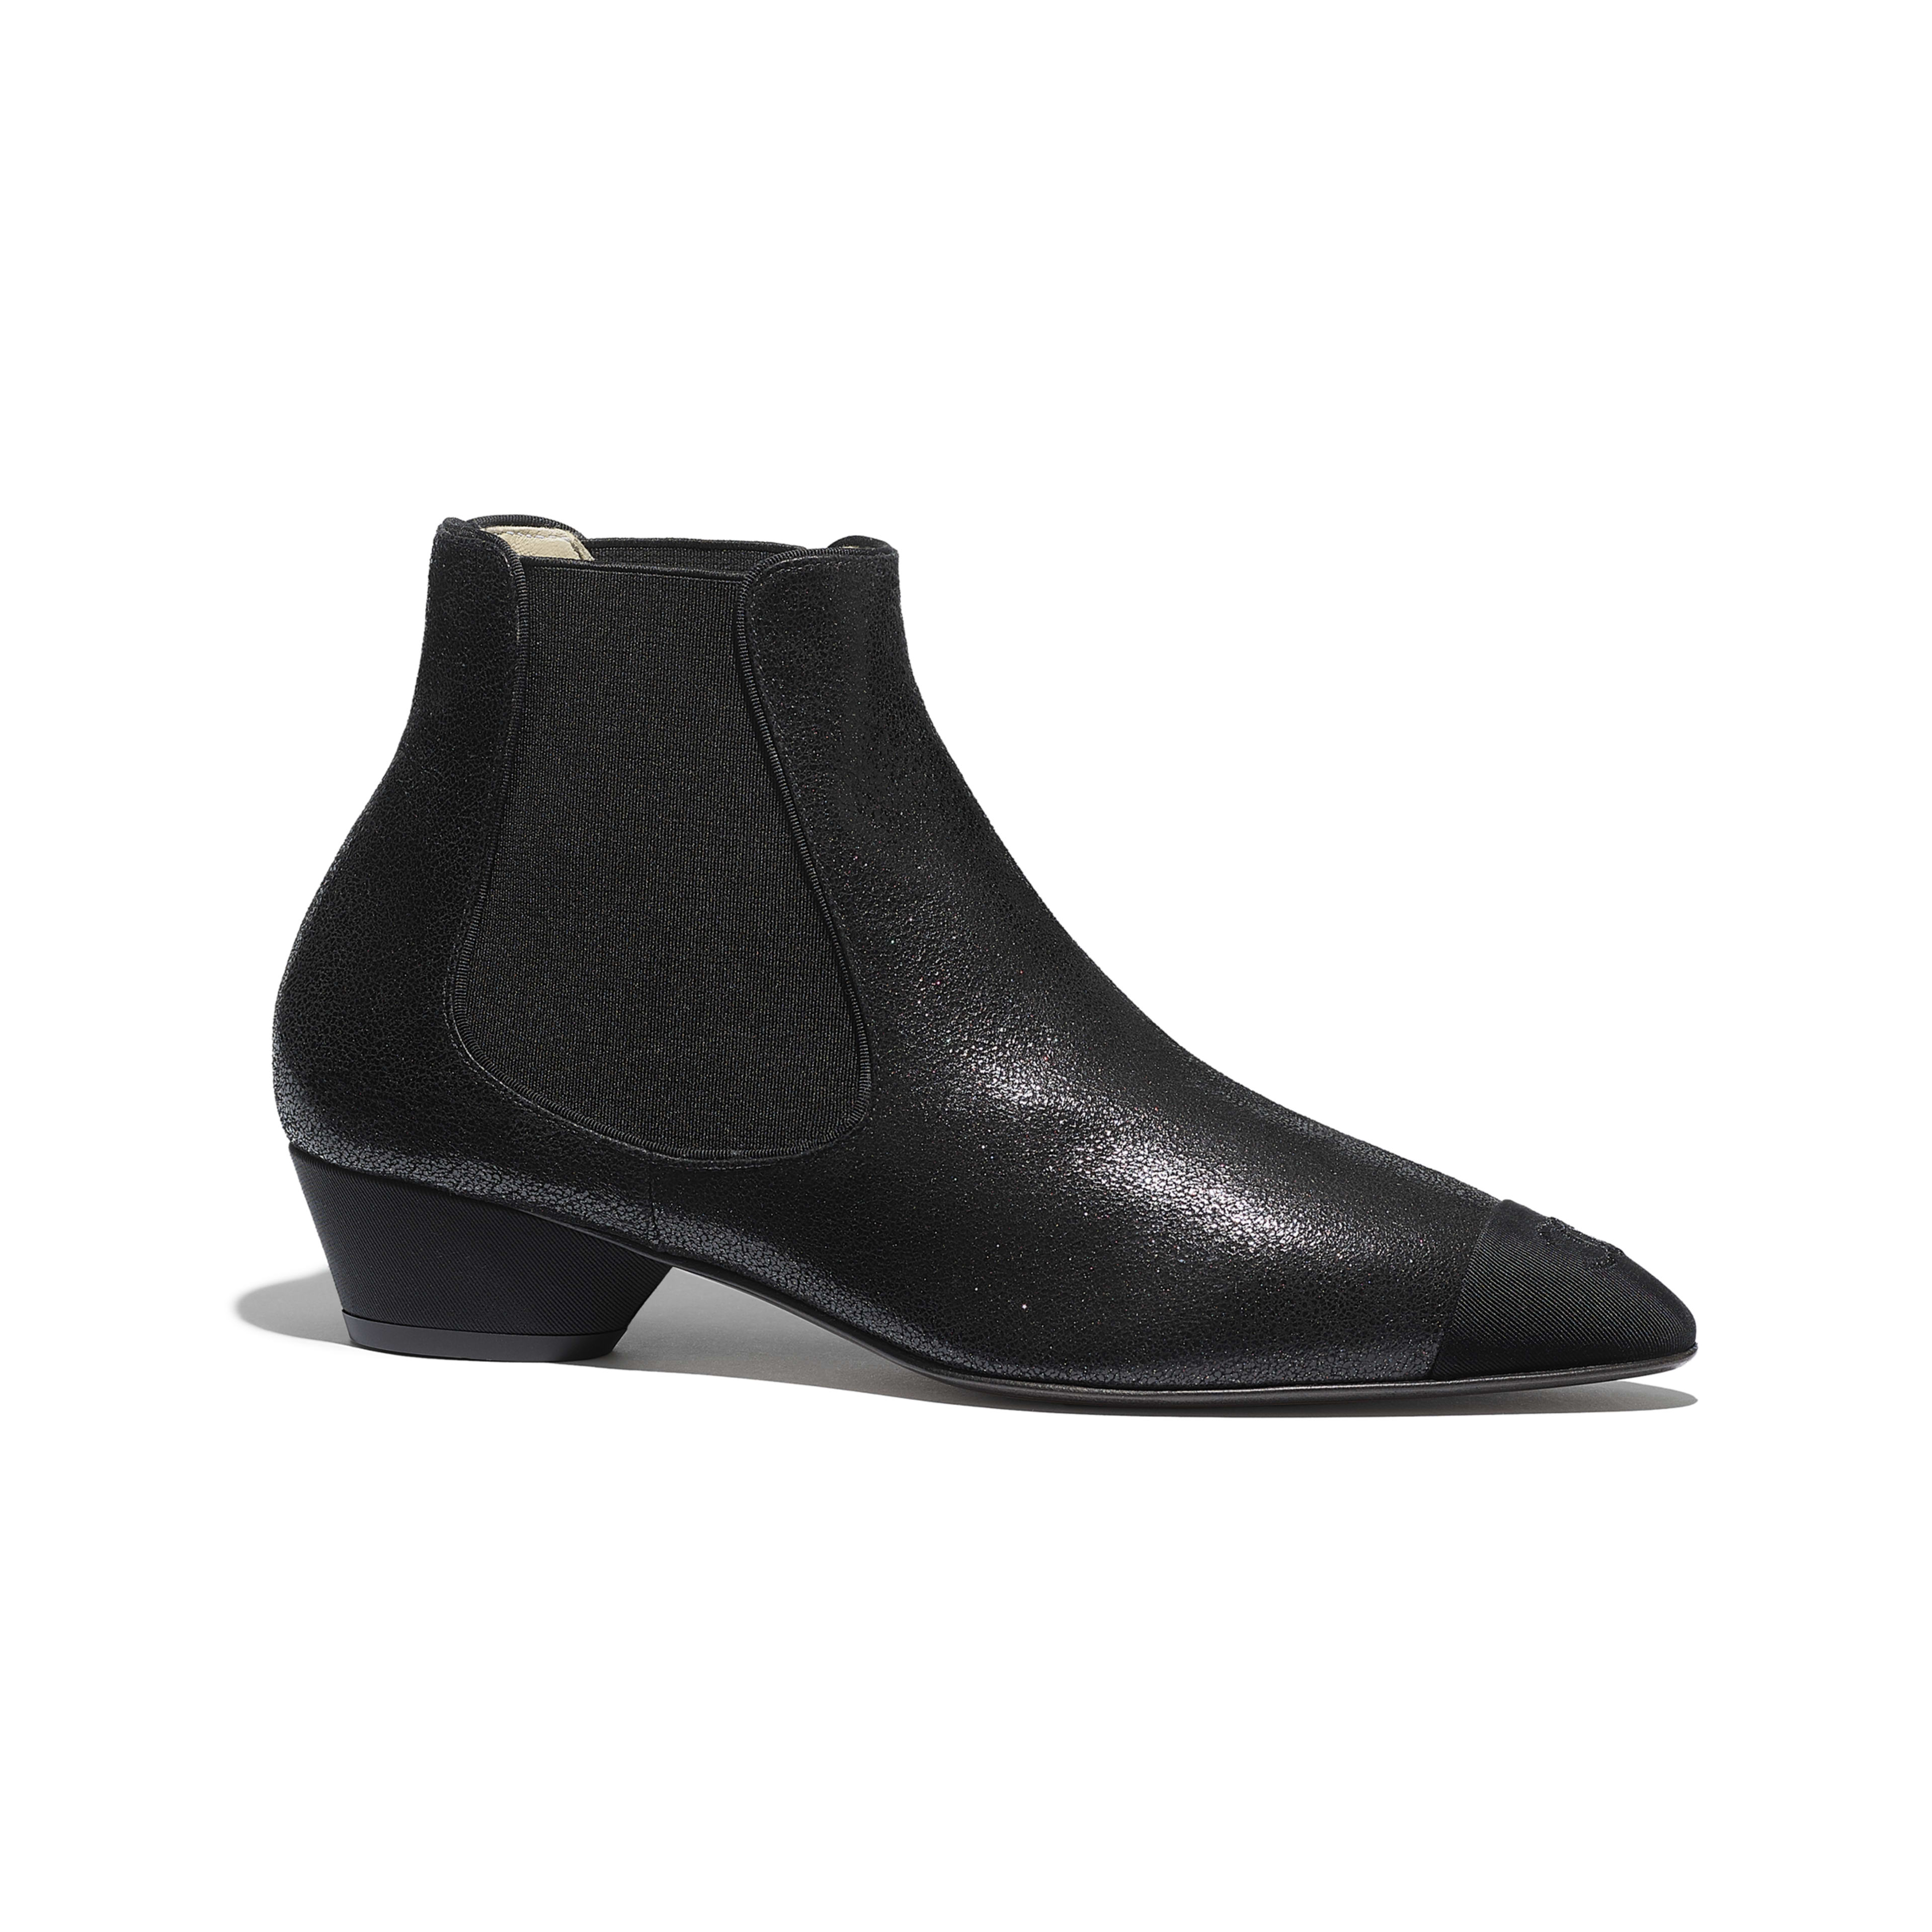 Ankle Boots - Black - Goatskin & Grosgrain - Default view - see full sized version